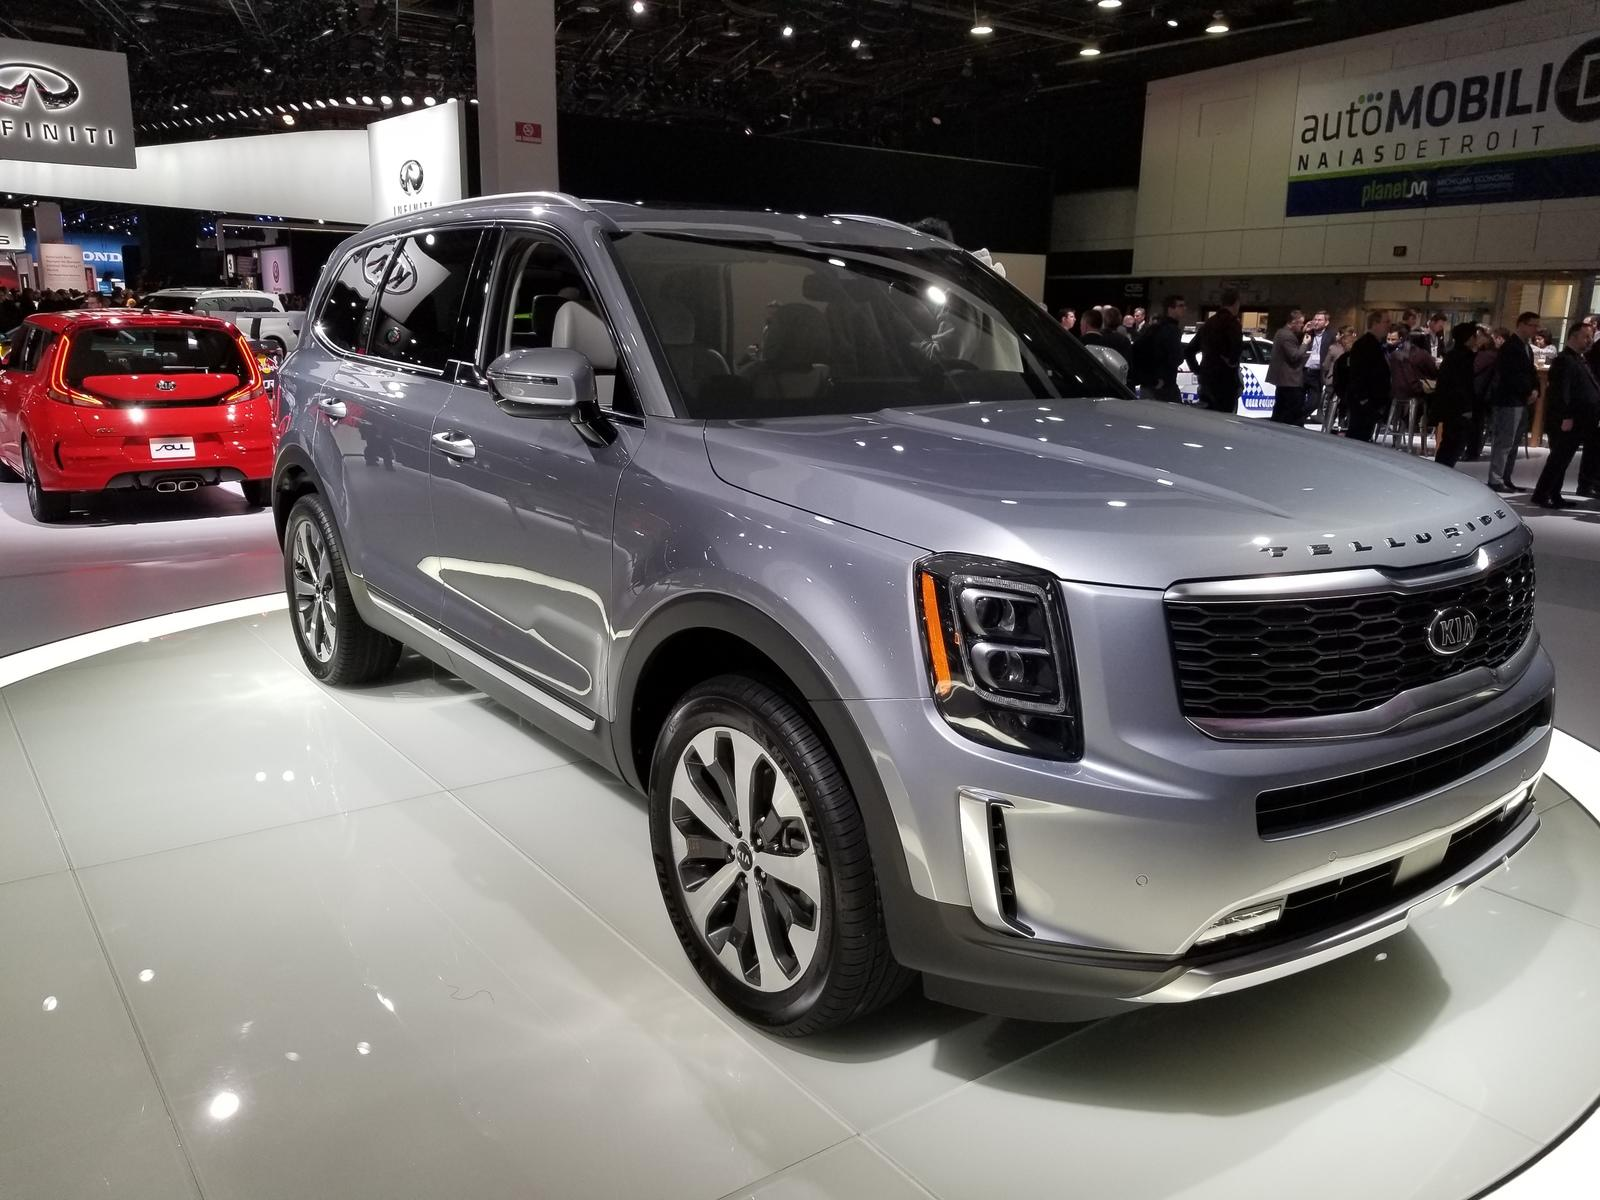 kia drops pricing info on 2020 telluride suv looks like a steal against the competition top speed. Black Bedroom Furniture Sets. Home Design Ideas